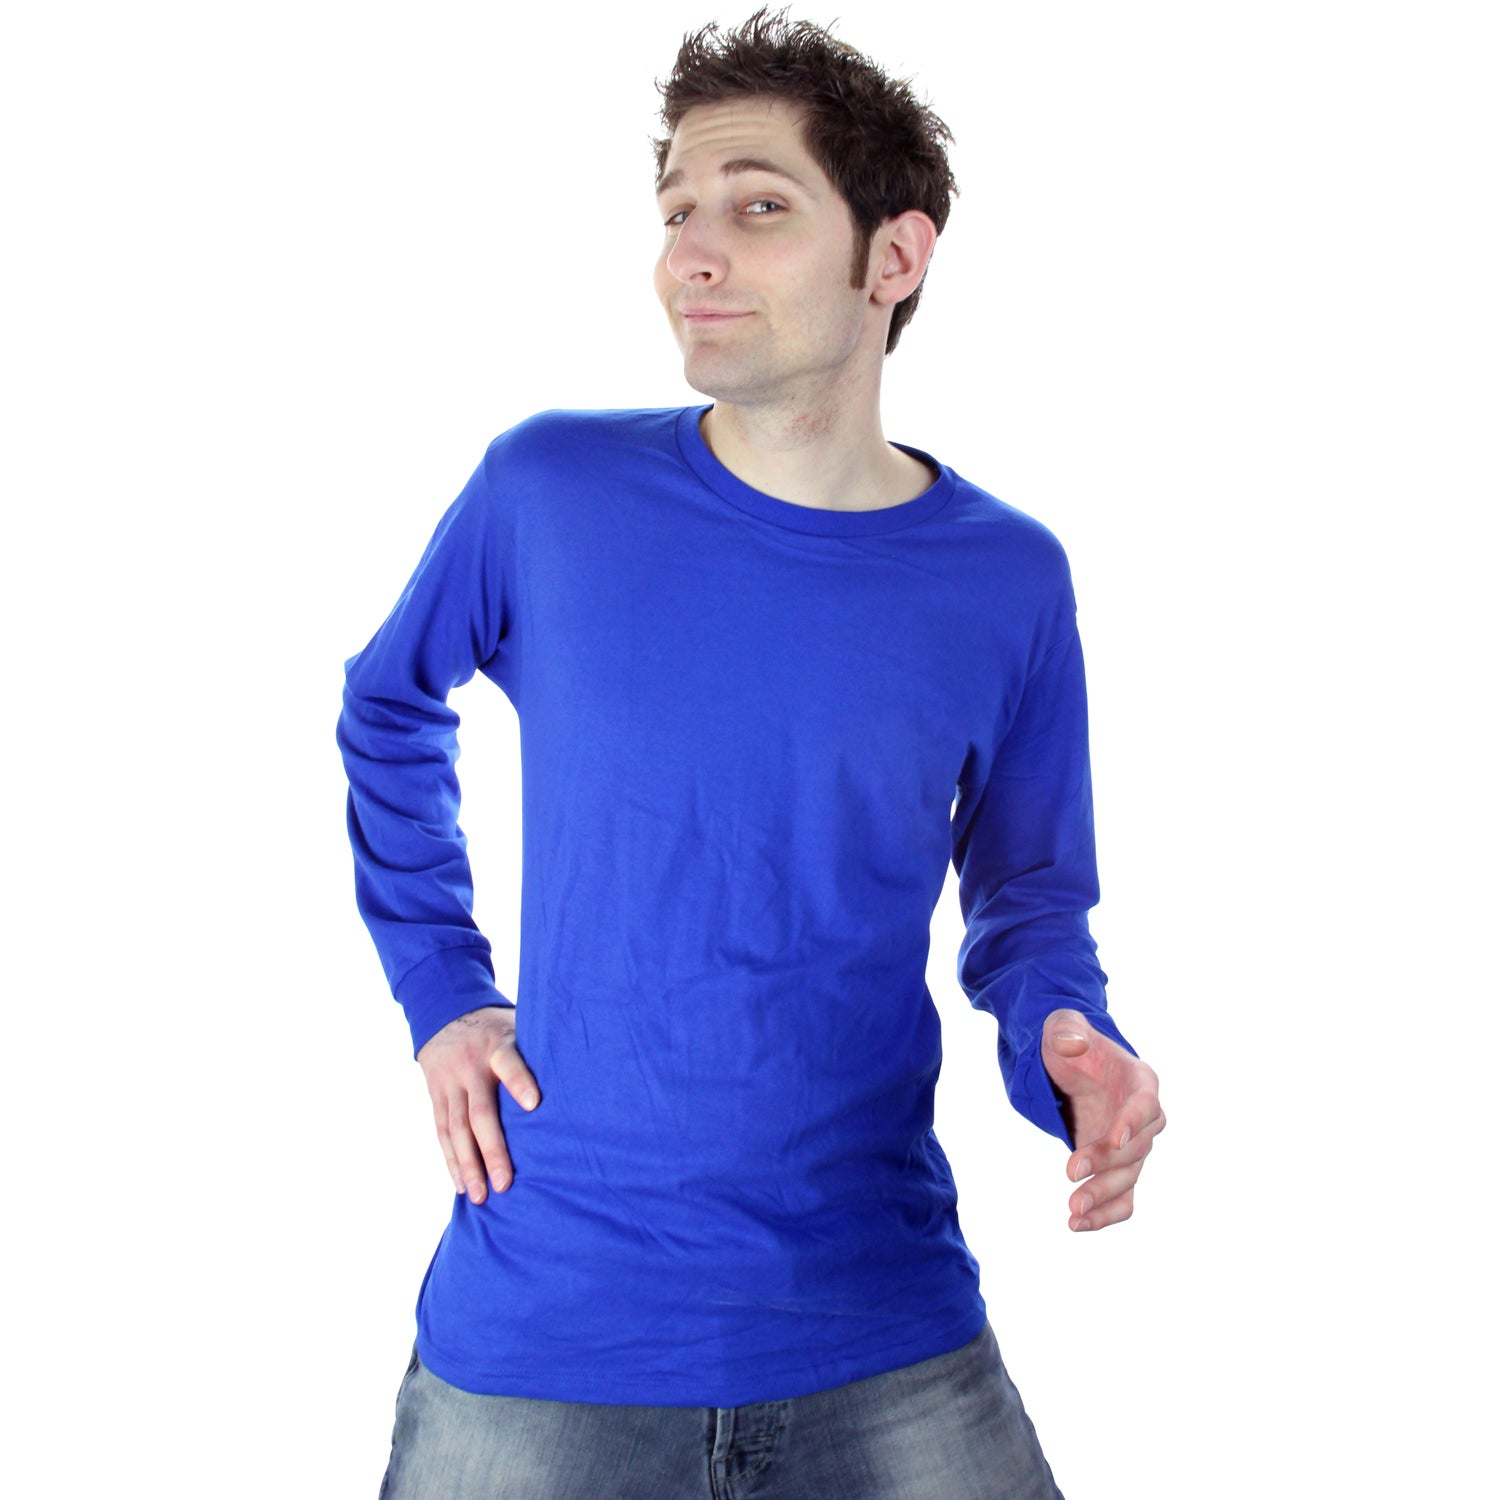 Fruit of the loom long sleeve cotton t shirt colors for Long sleeve custom t shirts